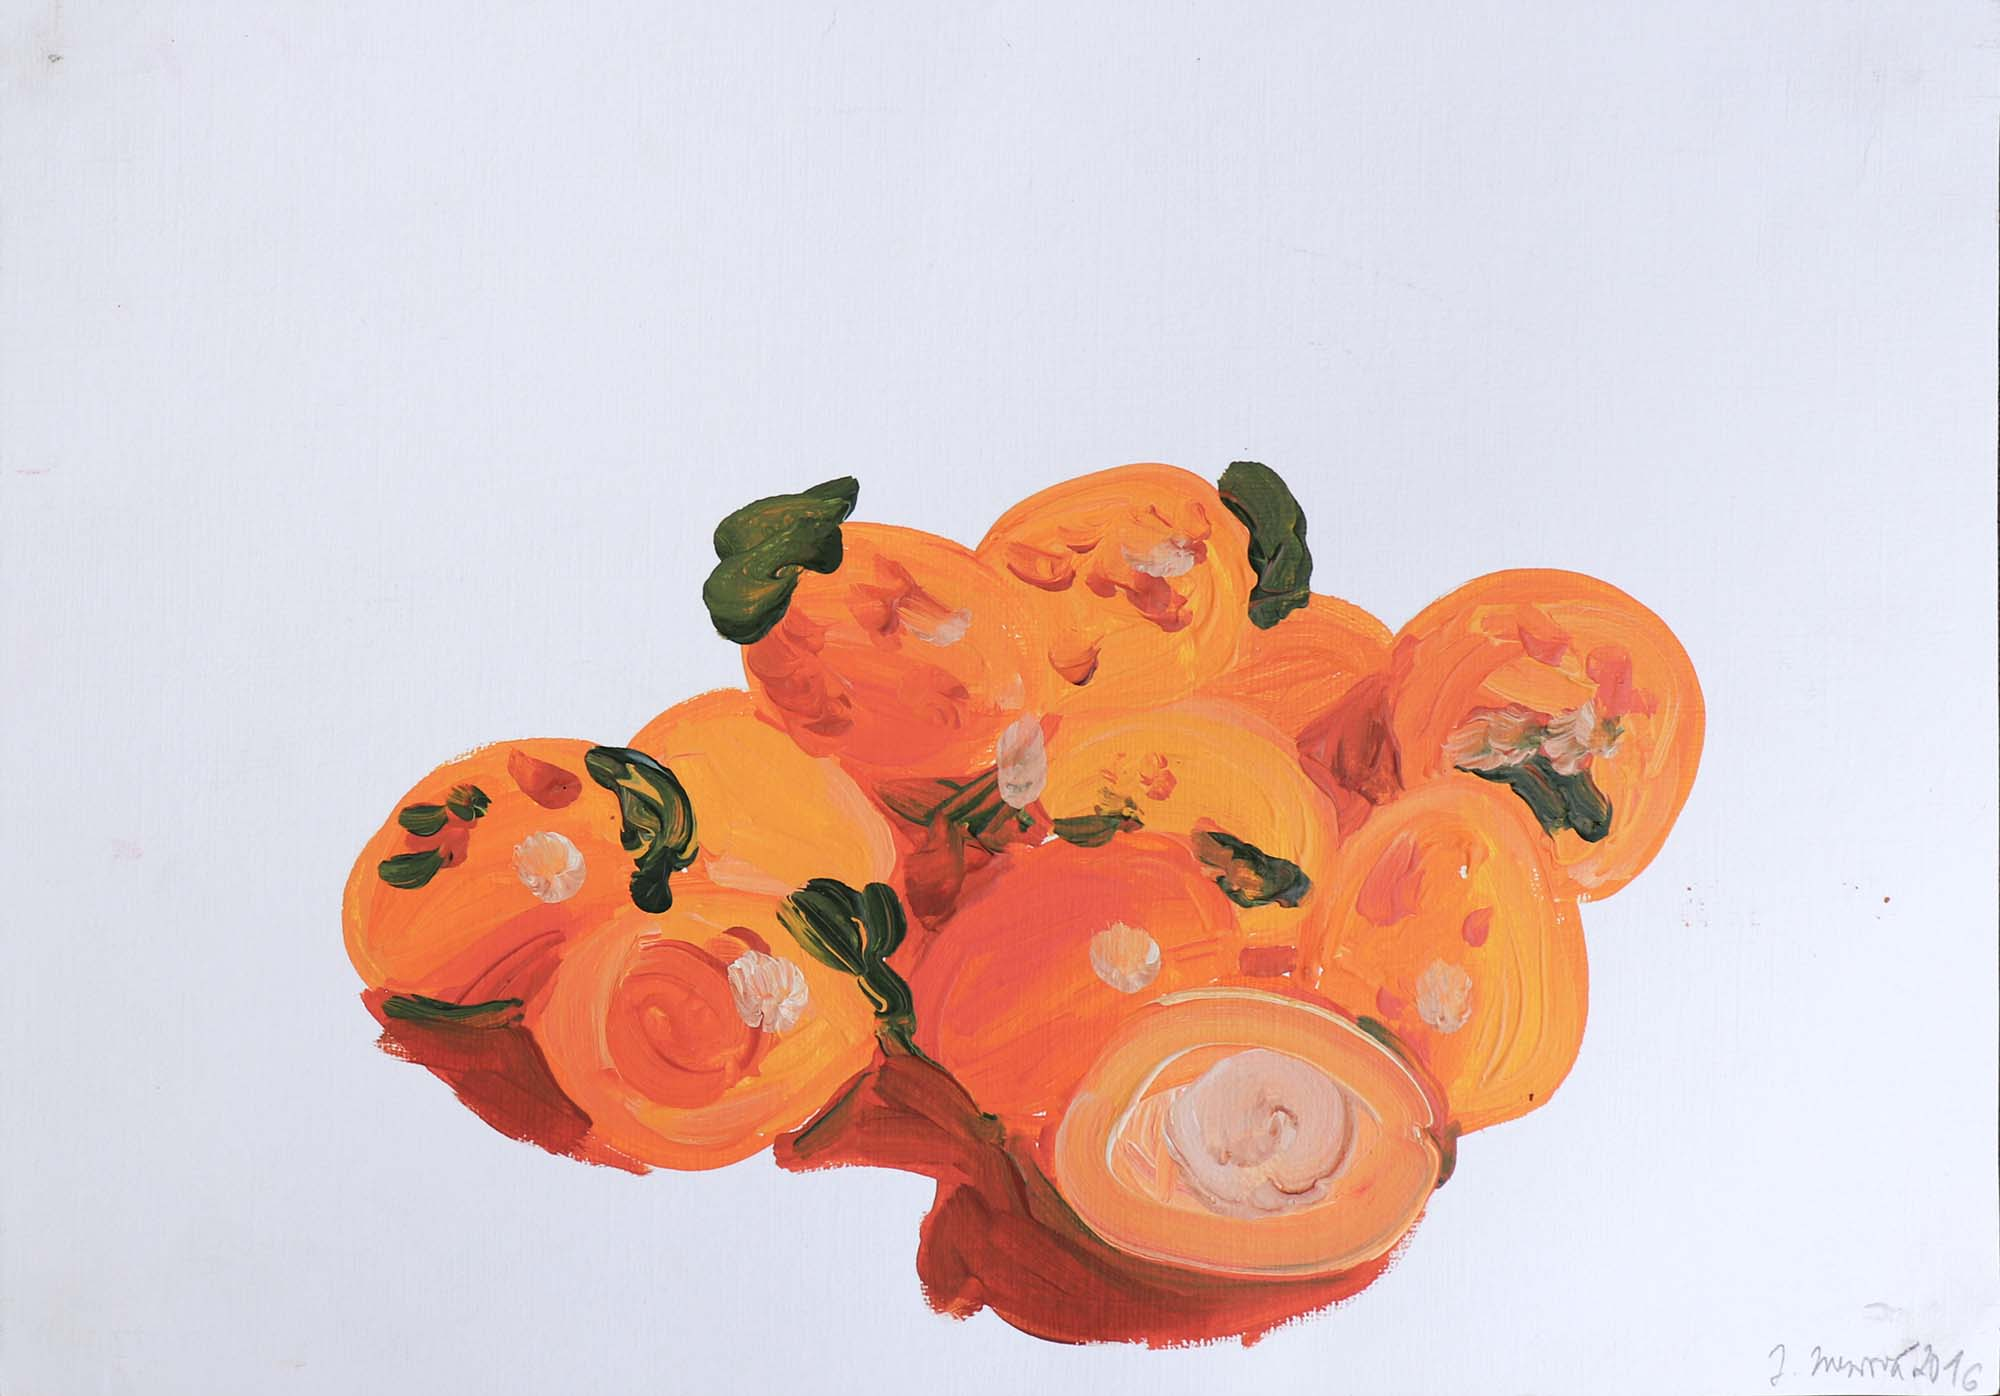 Juliana Mrvova, Oranges, Acrylic on paper, 30 x 40 cm, 2016